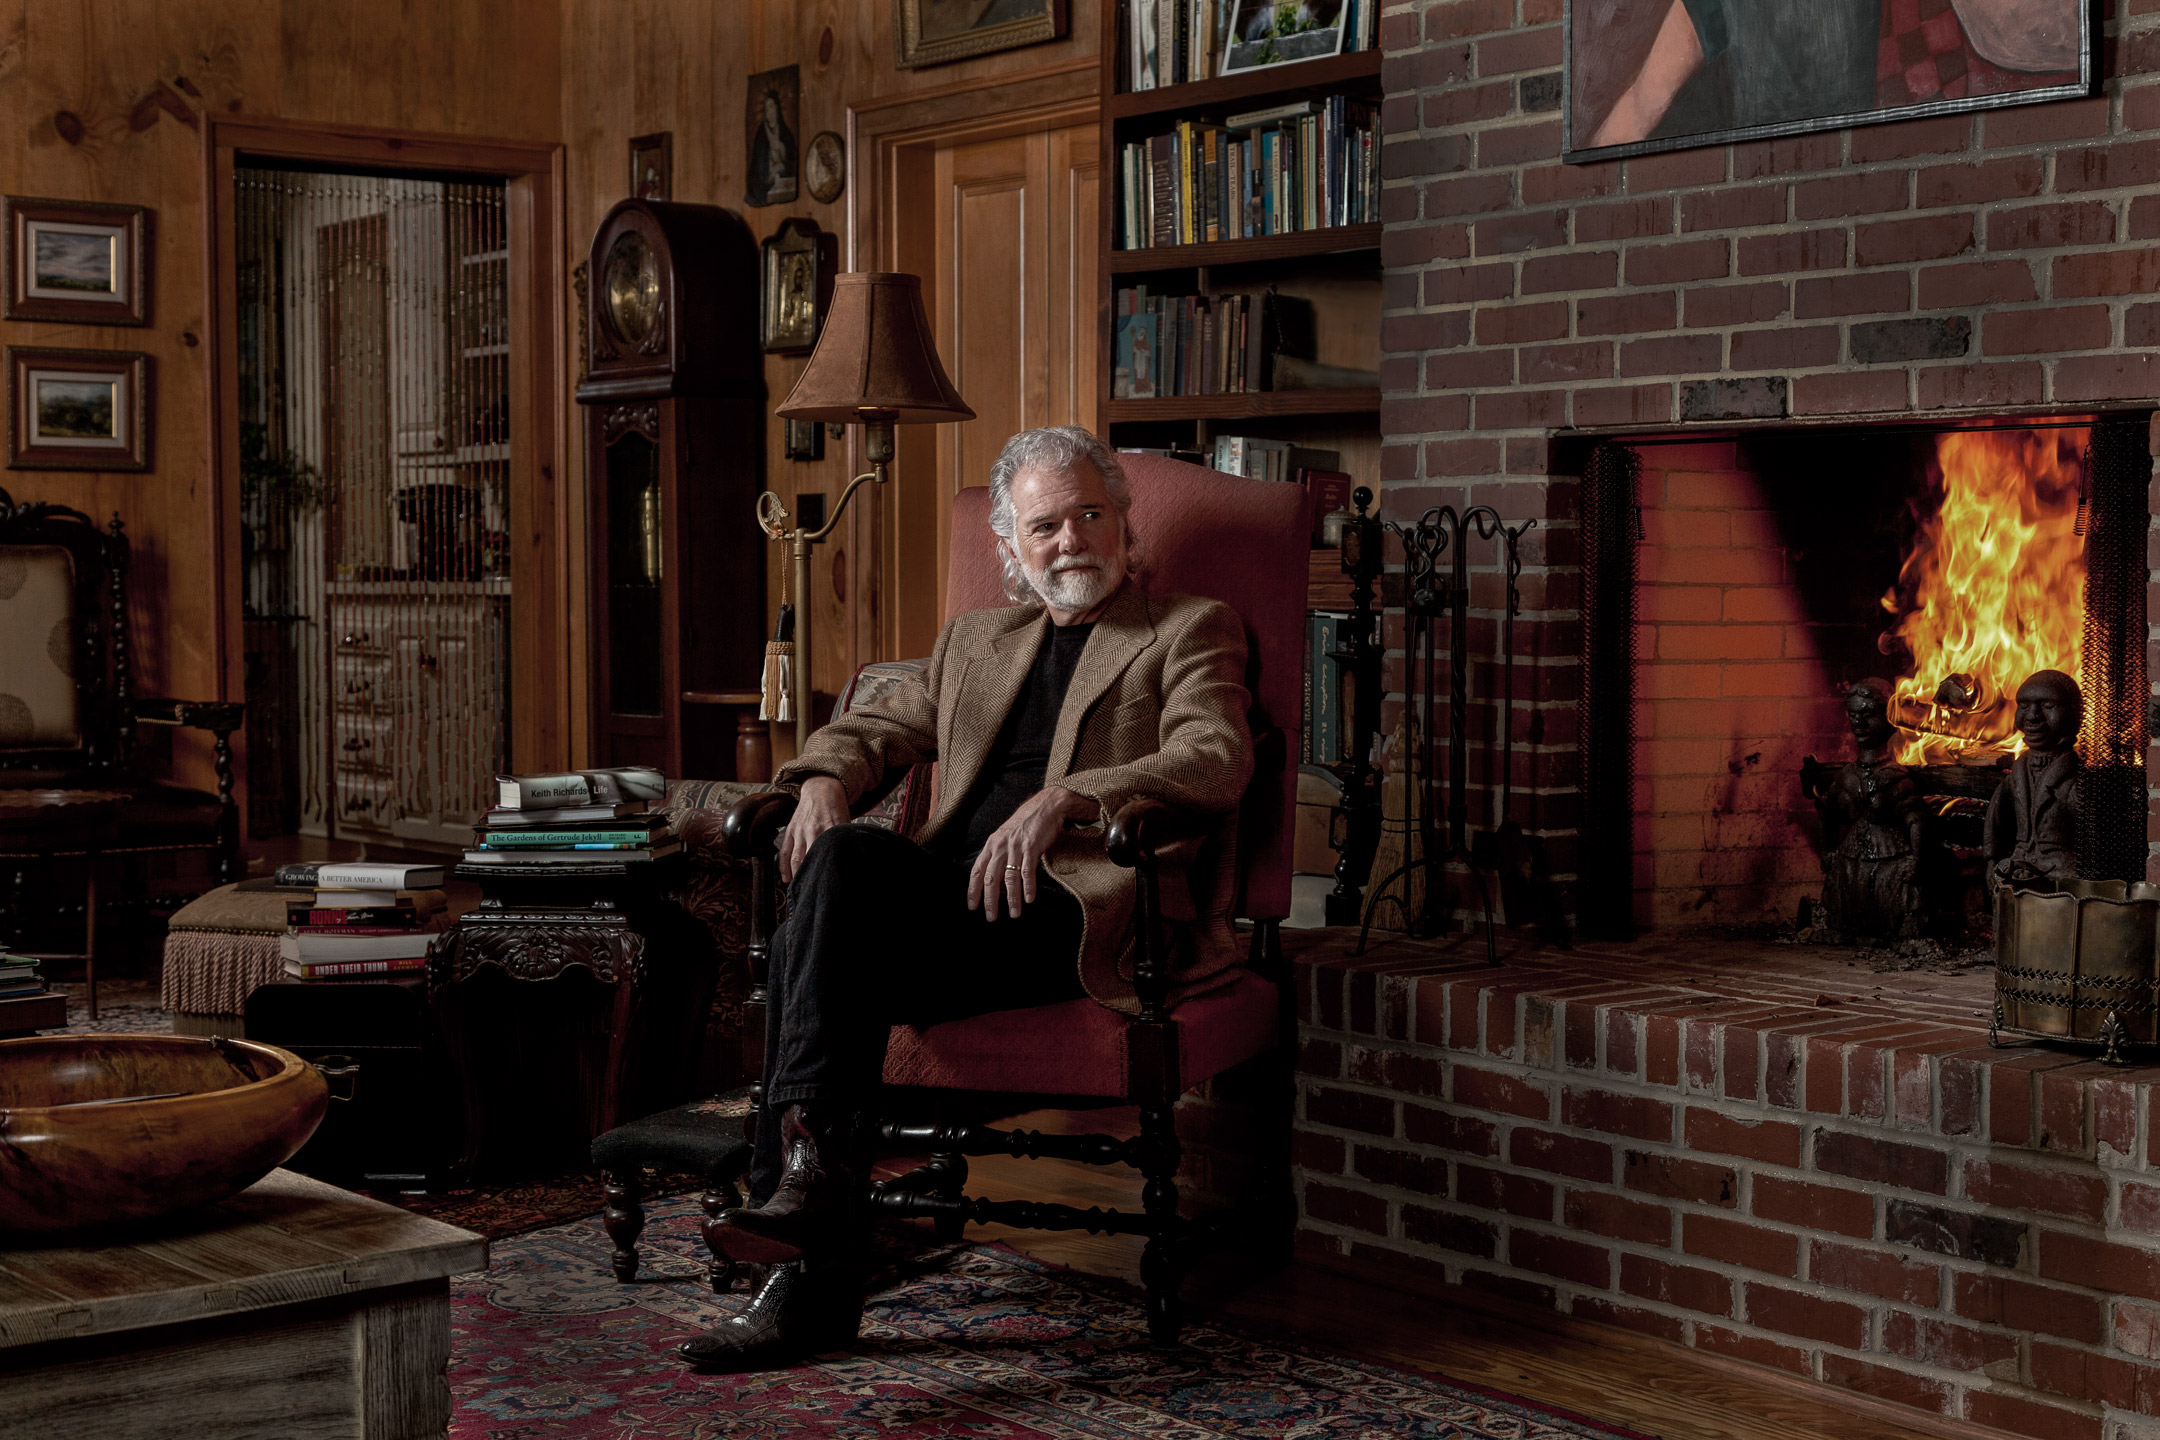 Chuck_Leavell_Piano_Macon Ga_Rolling Stones_Michael J Moore_Creative Spaces.jpg